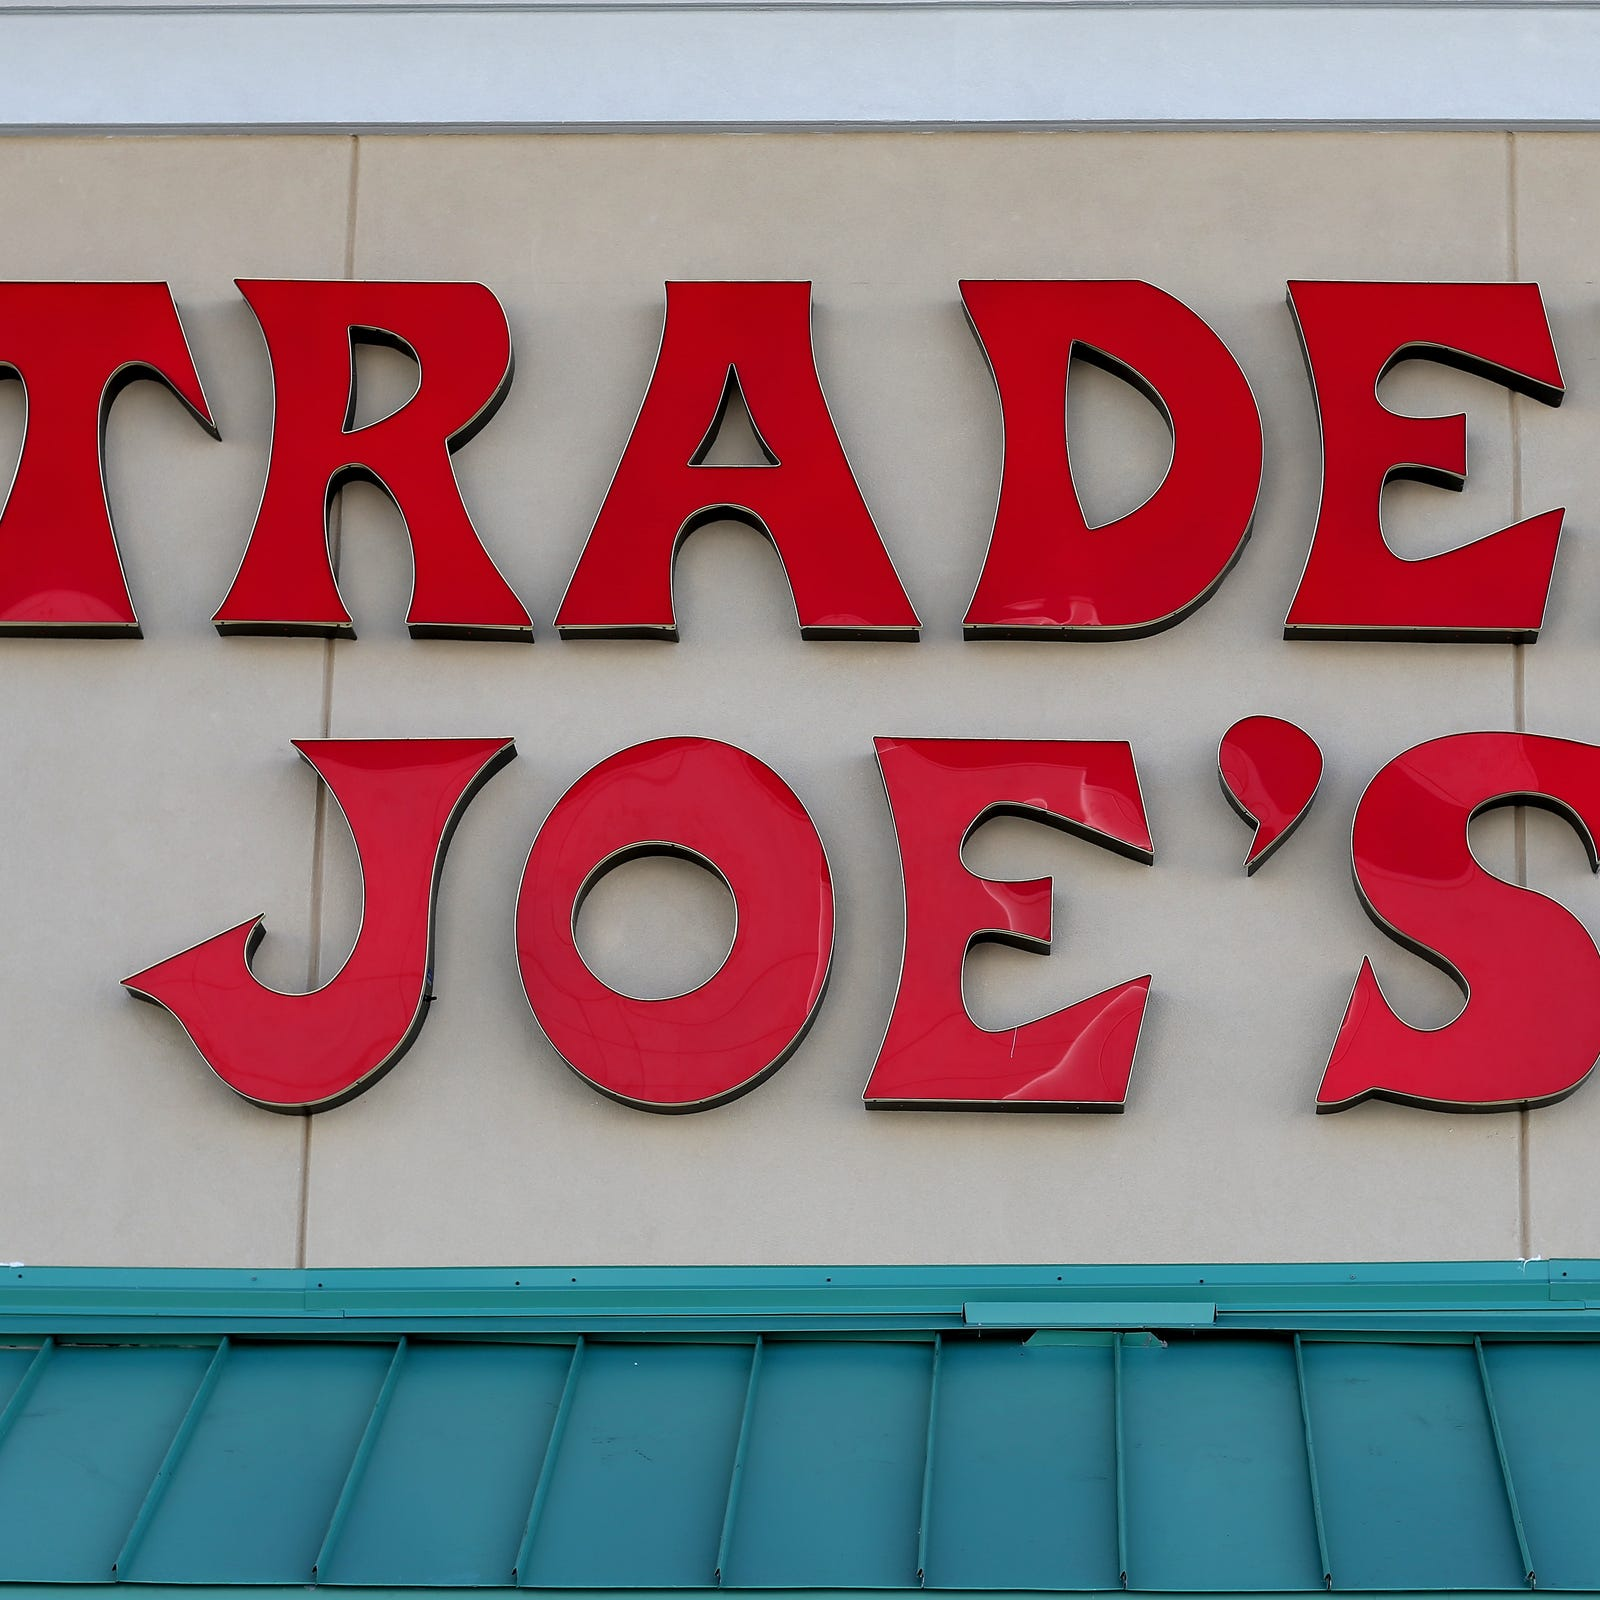 Trader Joe's launches YouTube channel